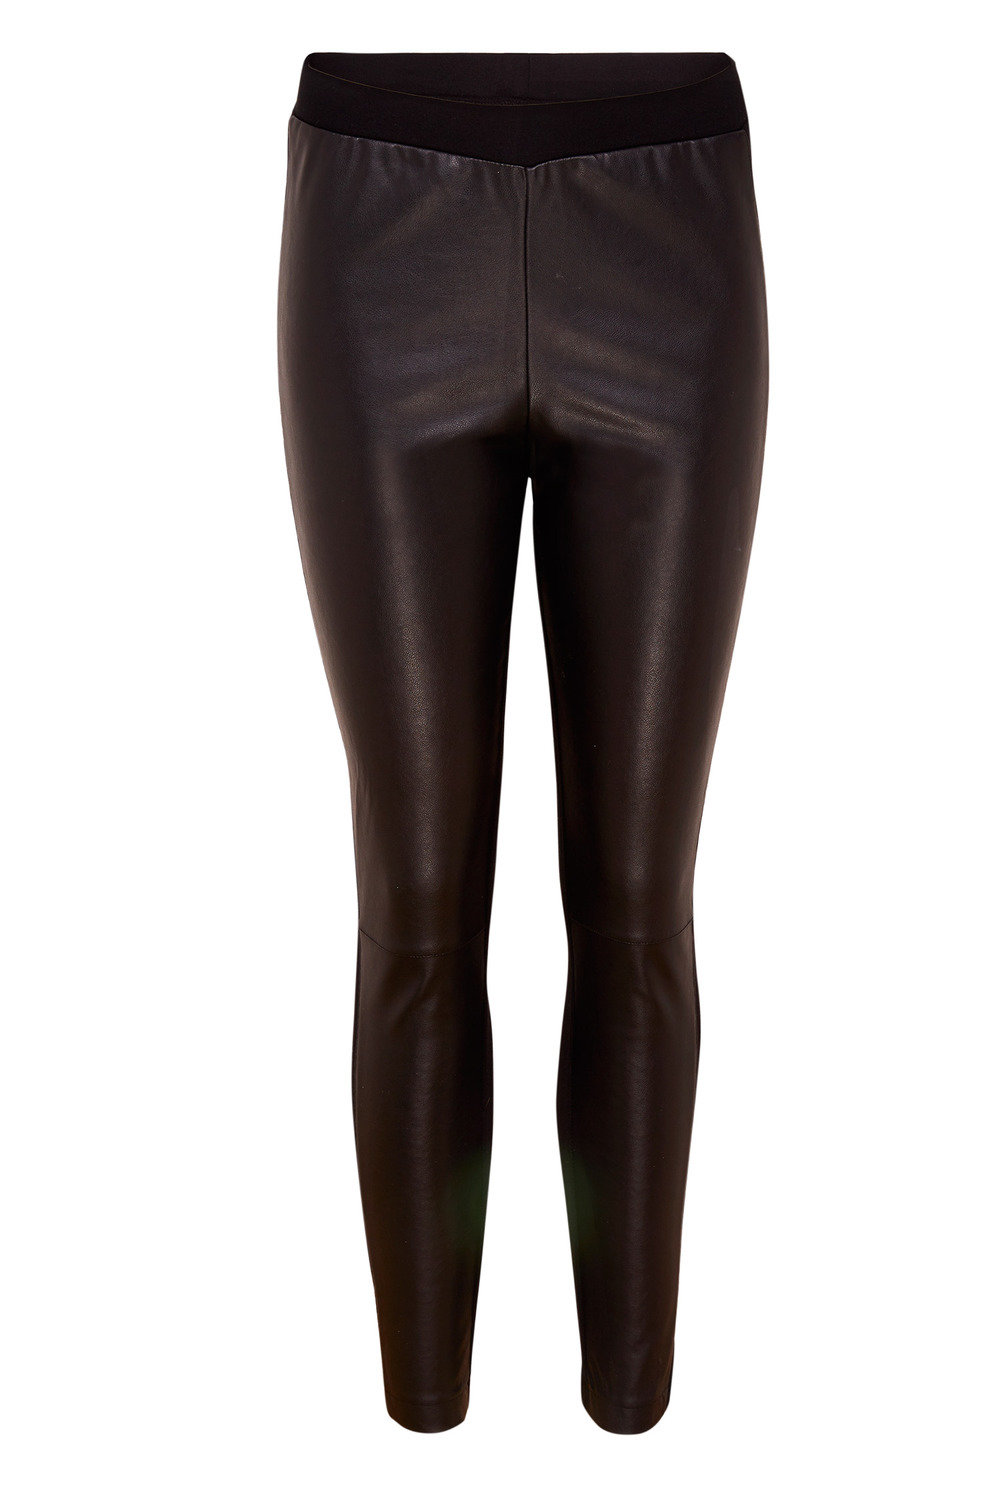 f9216d3d0d5ce Together Faux Leather Leggings Online | Shop EziBuy